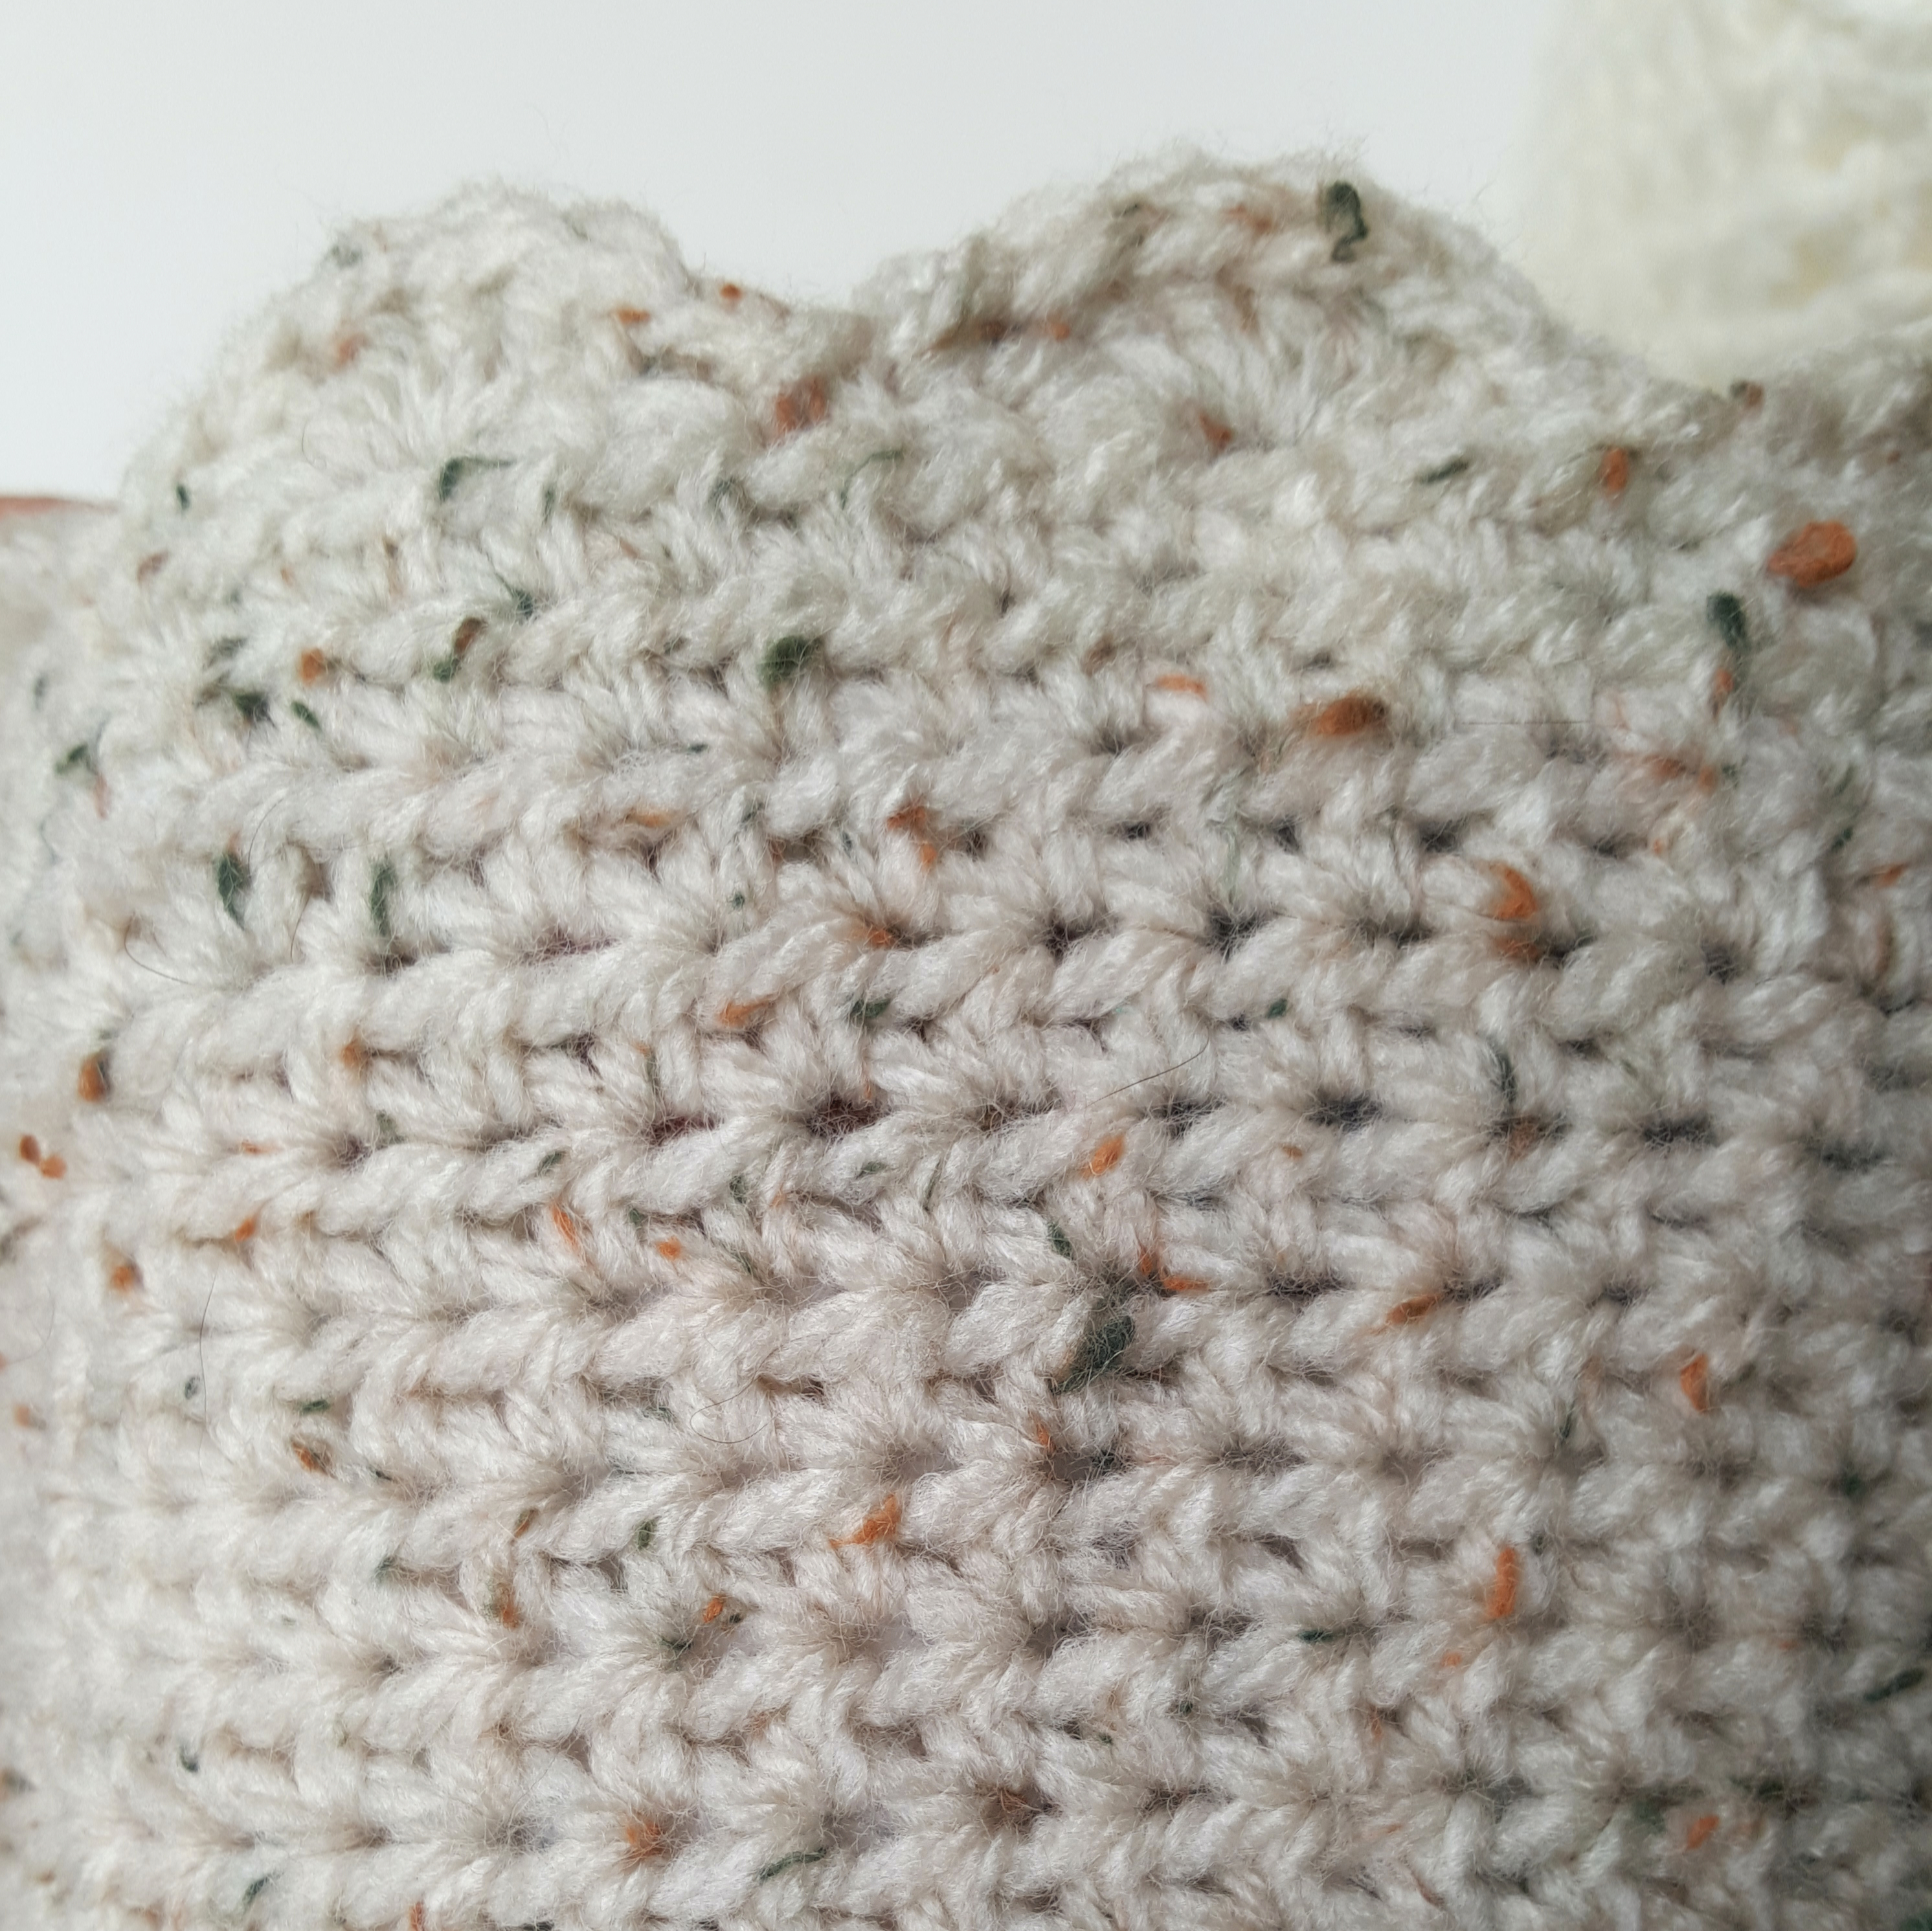 Flip a half-double crochet basket inside out to reveal the wrong side of the fabric.